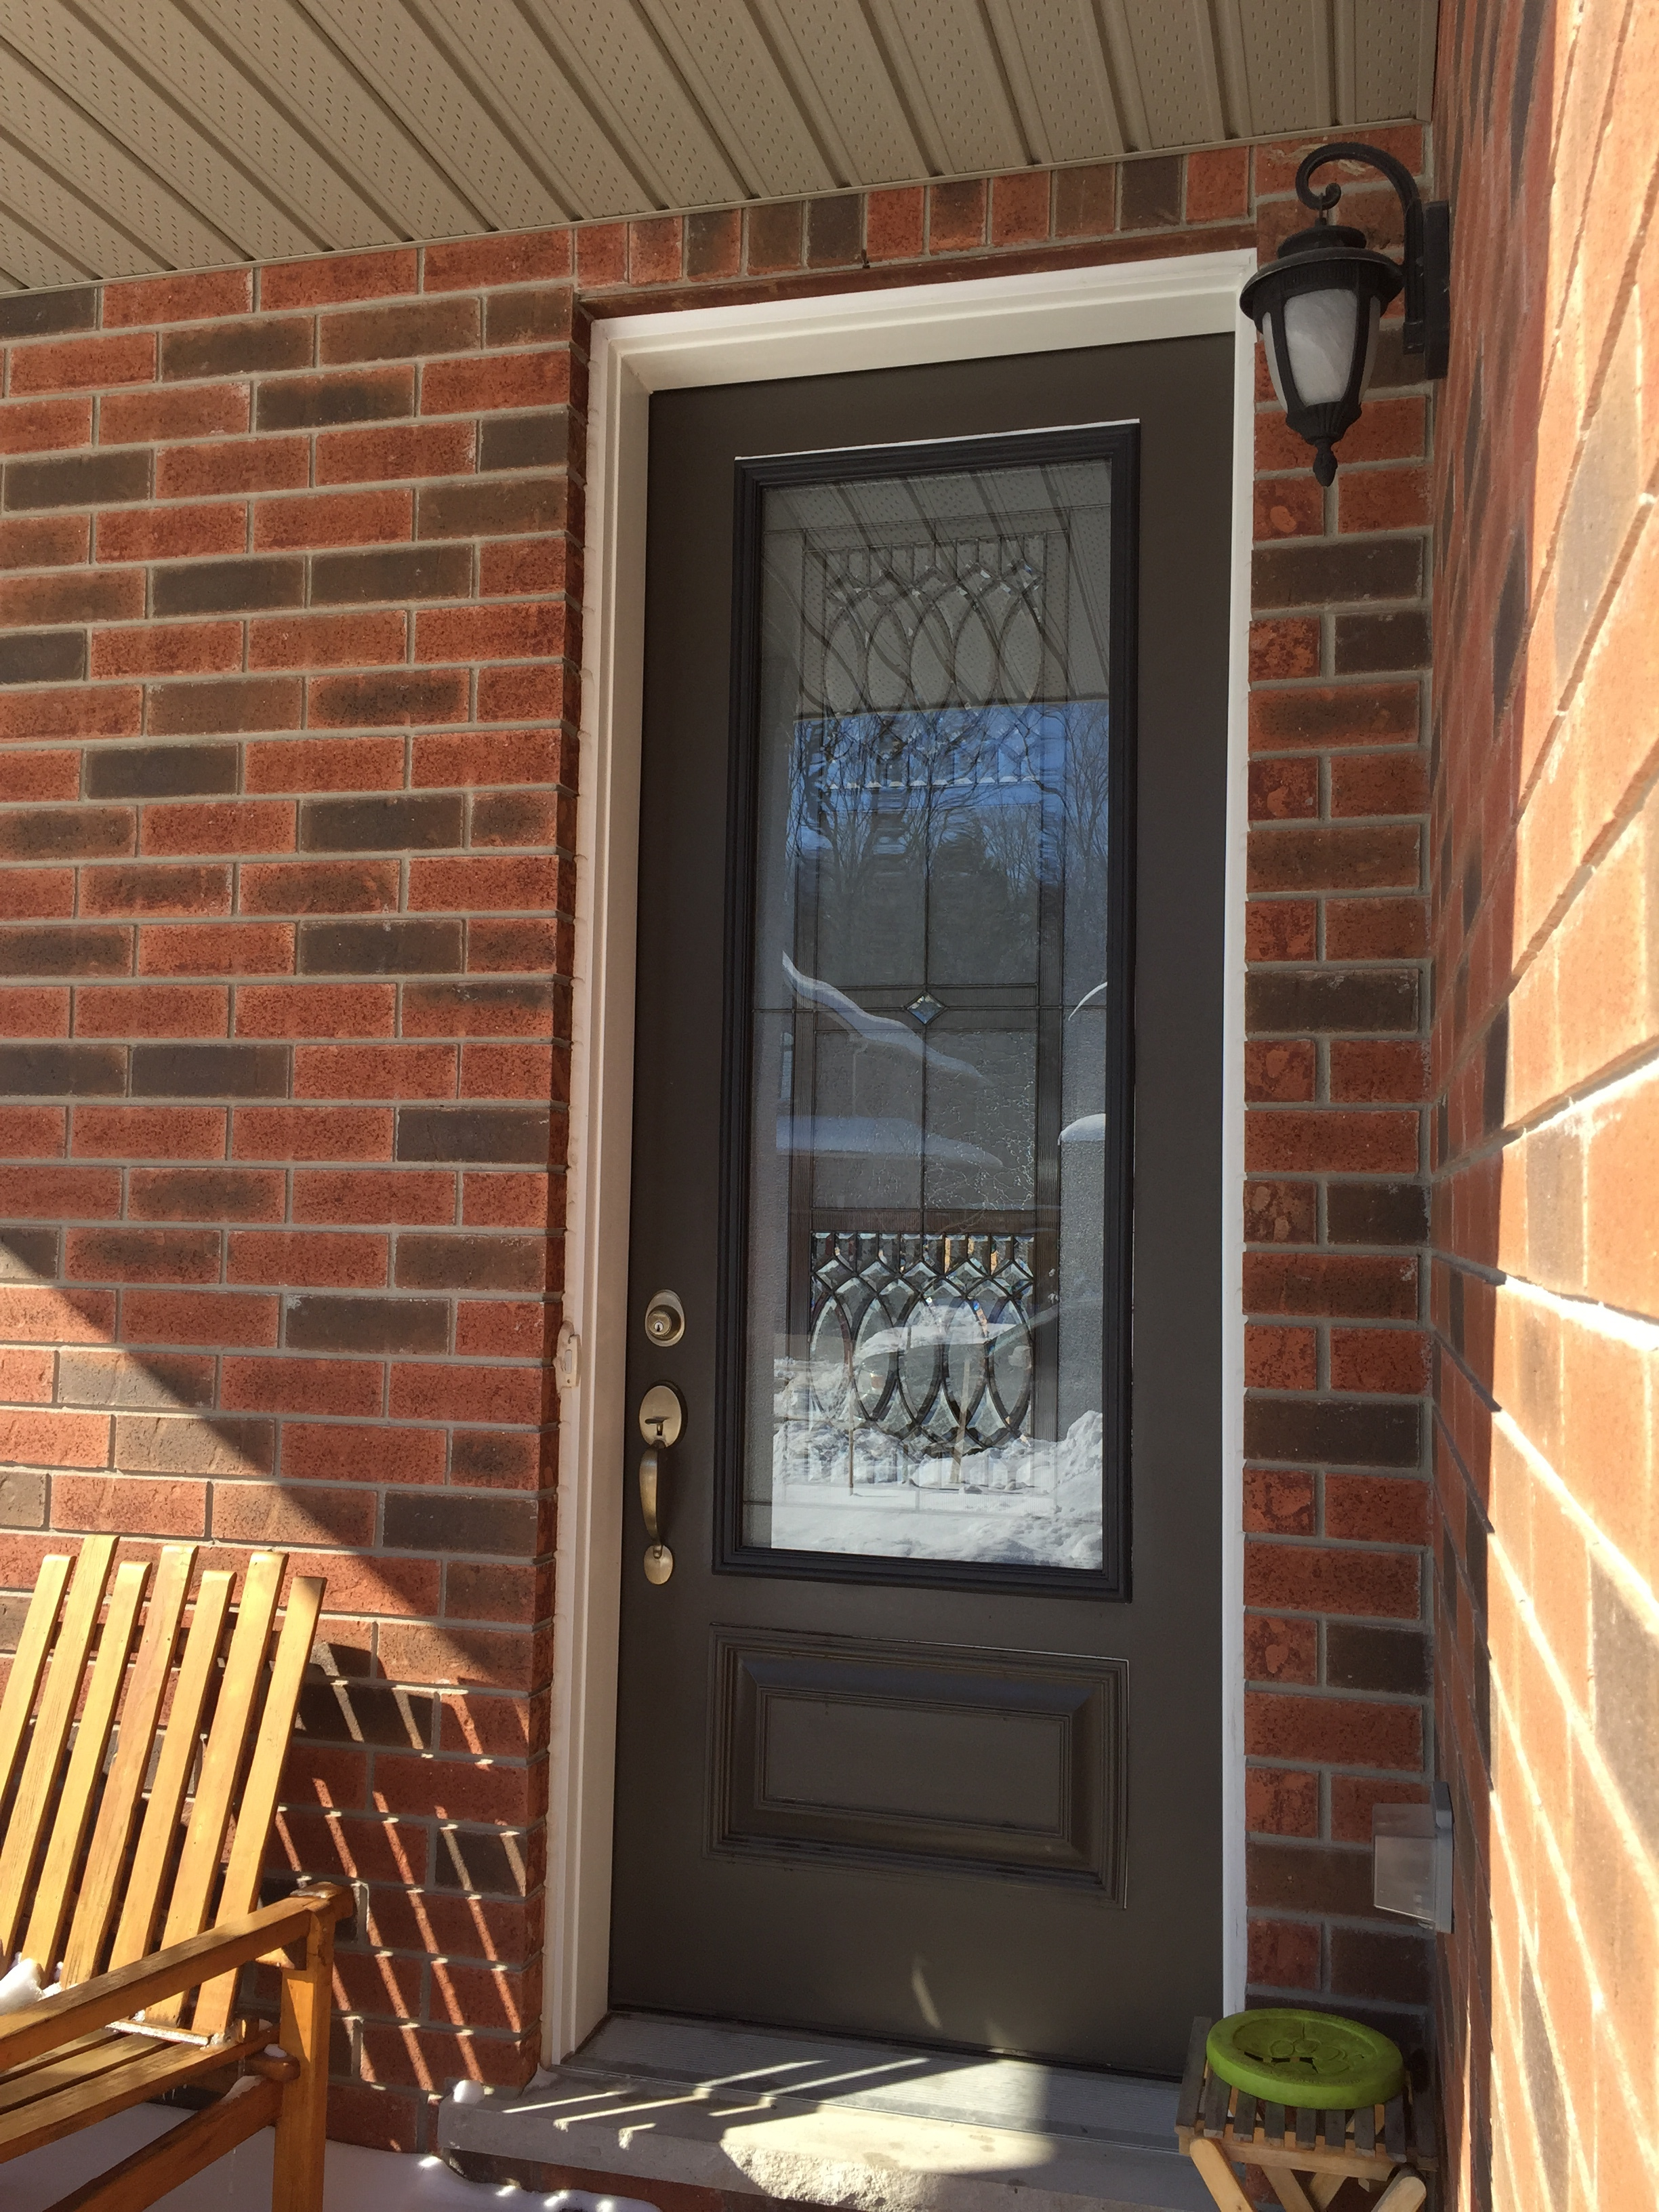 Rivermede_decorative-glass-Door-inserts-Barrie-Ontario